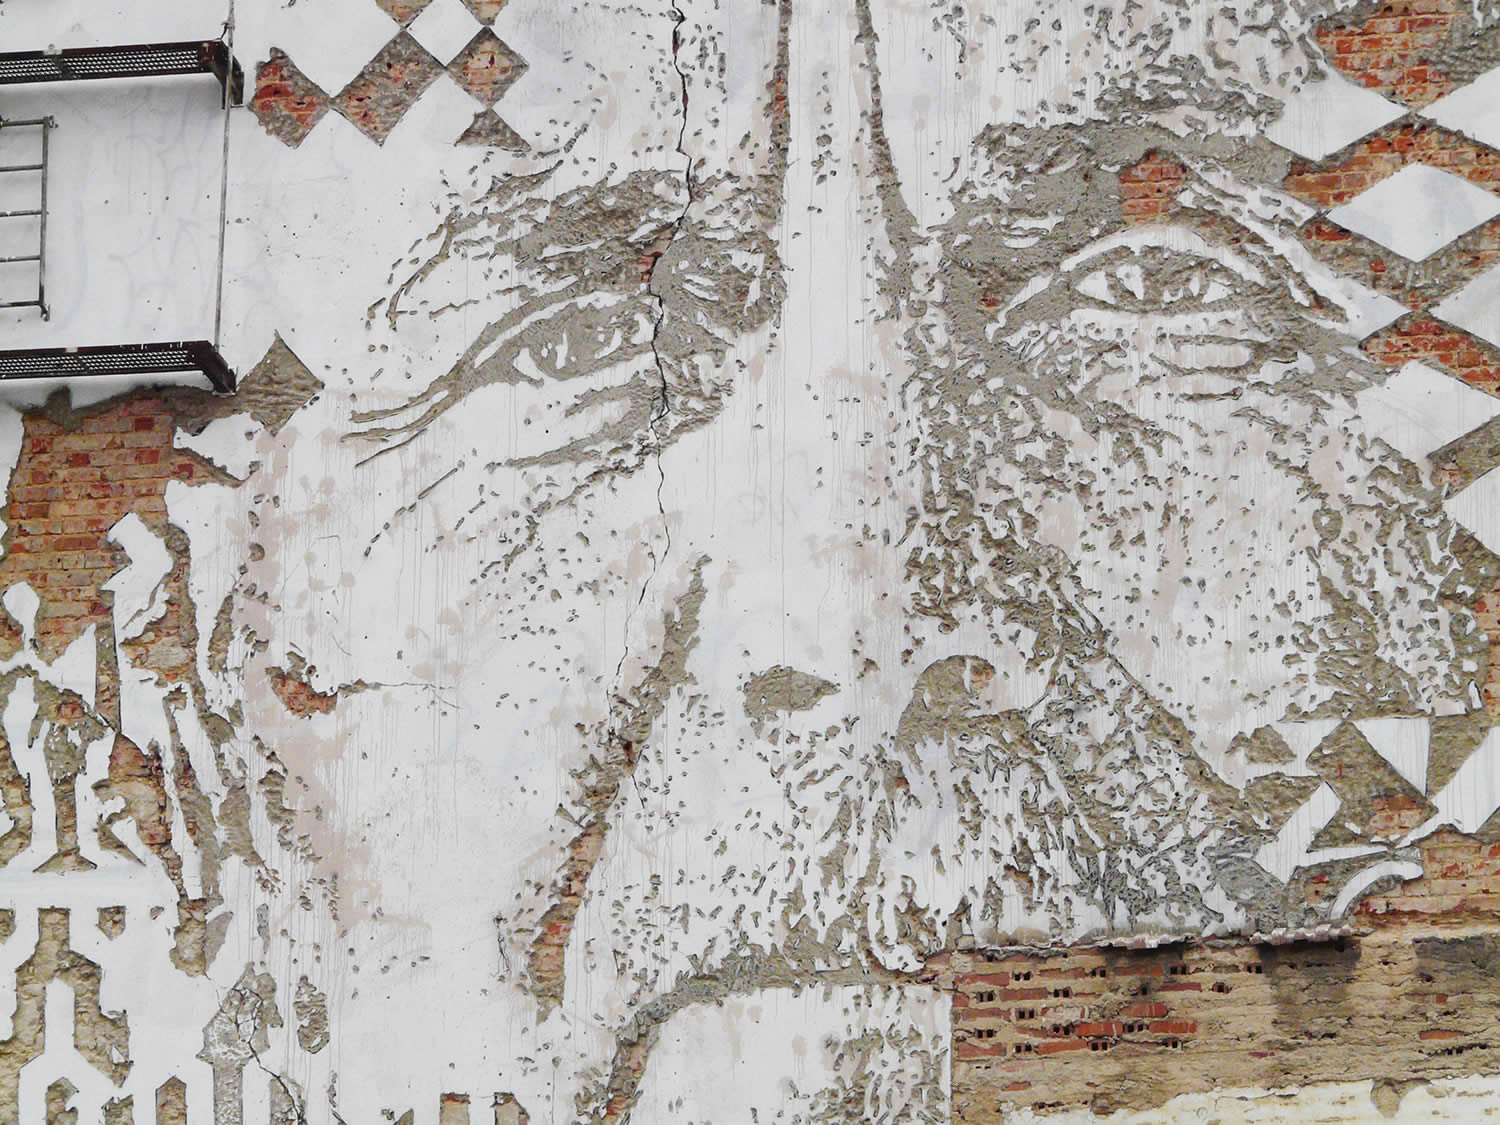 close-up of graffiti portrait, lisbon building alcantra, by vhils